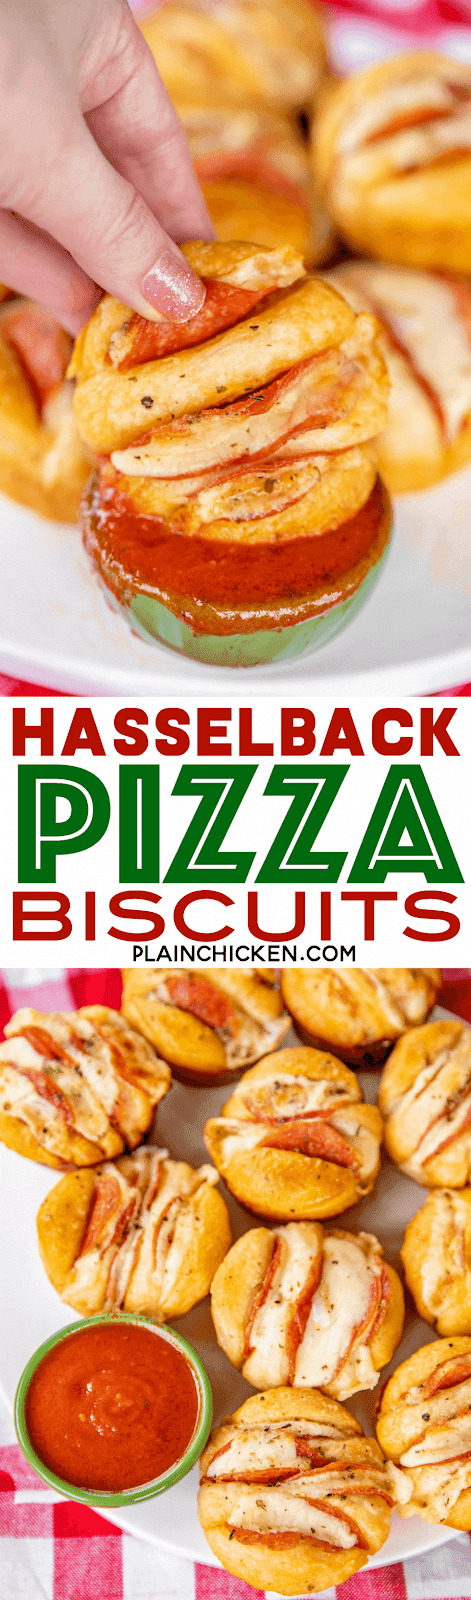 Hasselback Pizza Biscuits - a fun twist to pizza night!!! Refrigerated biscuits stuffed pepperoni and cheese and brushed with garlic butter. Dip in warm pizza sauce. SO good! Great for parties, lunch, dinner, or afternoon snack. SO easy to make and everyone LOVES them!! #pizza #pepperoni